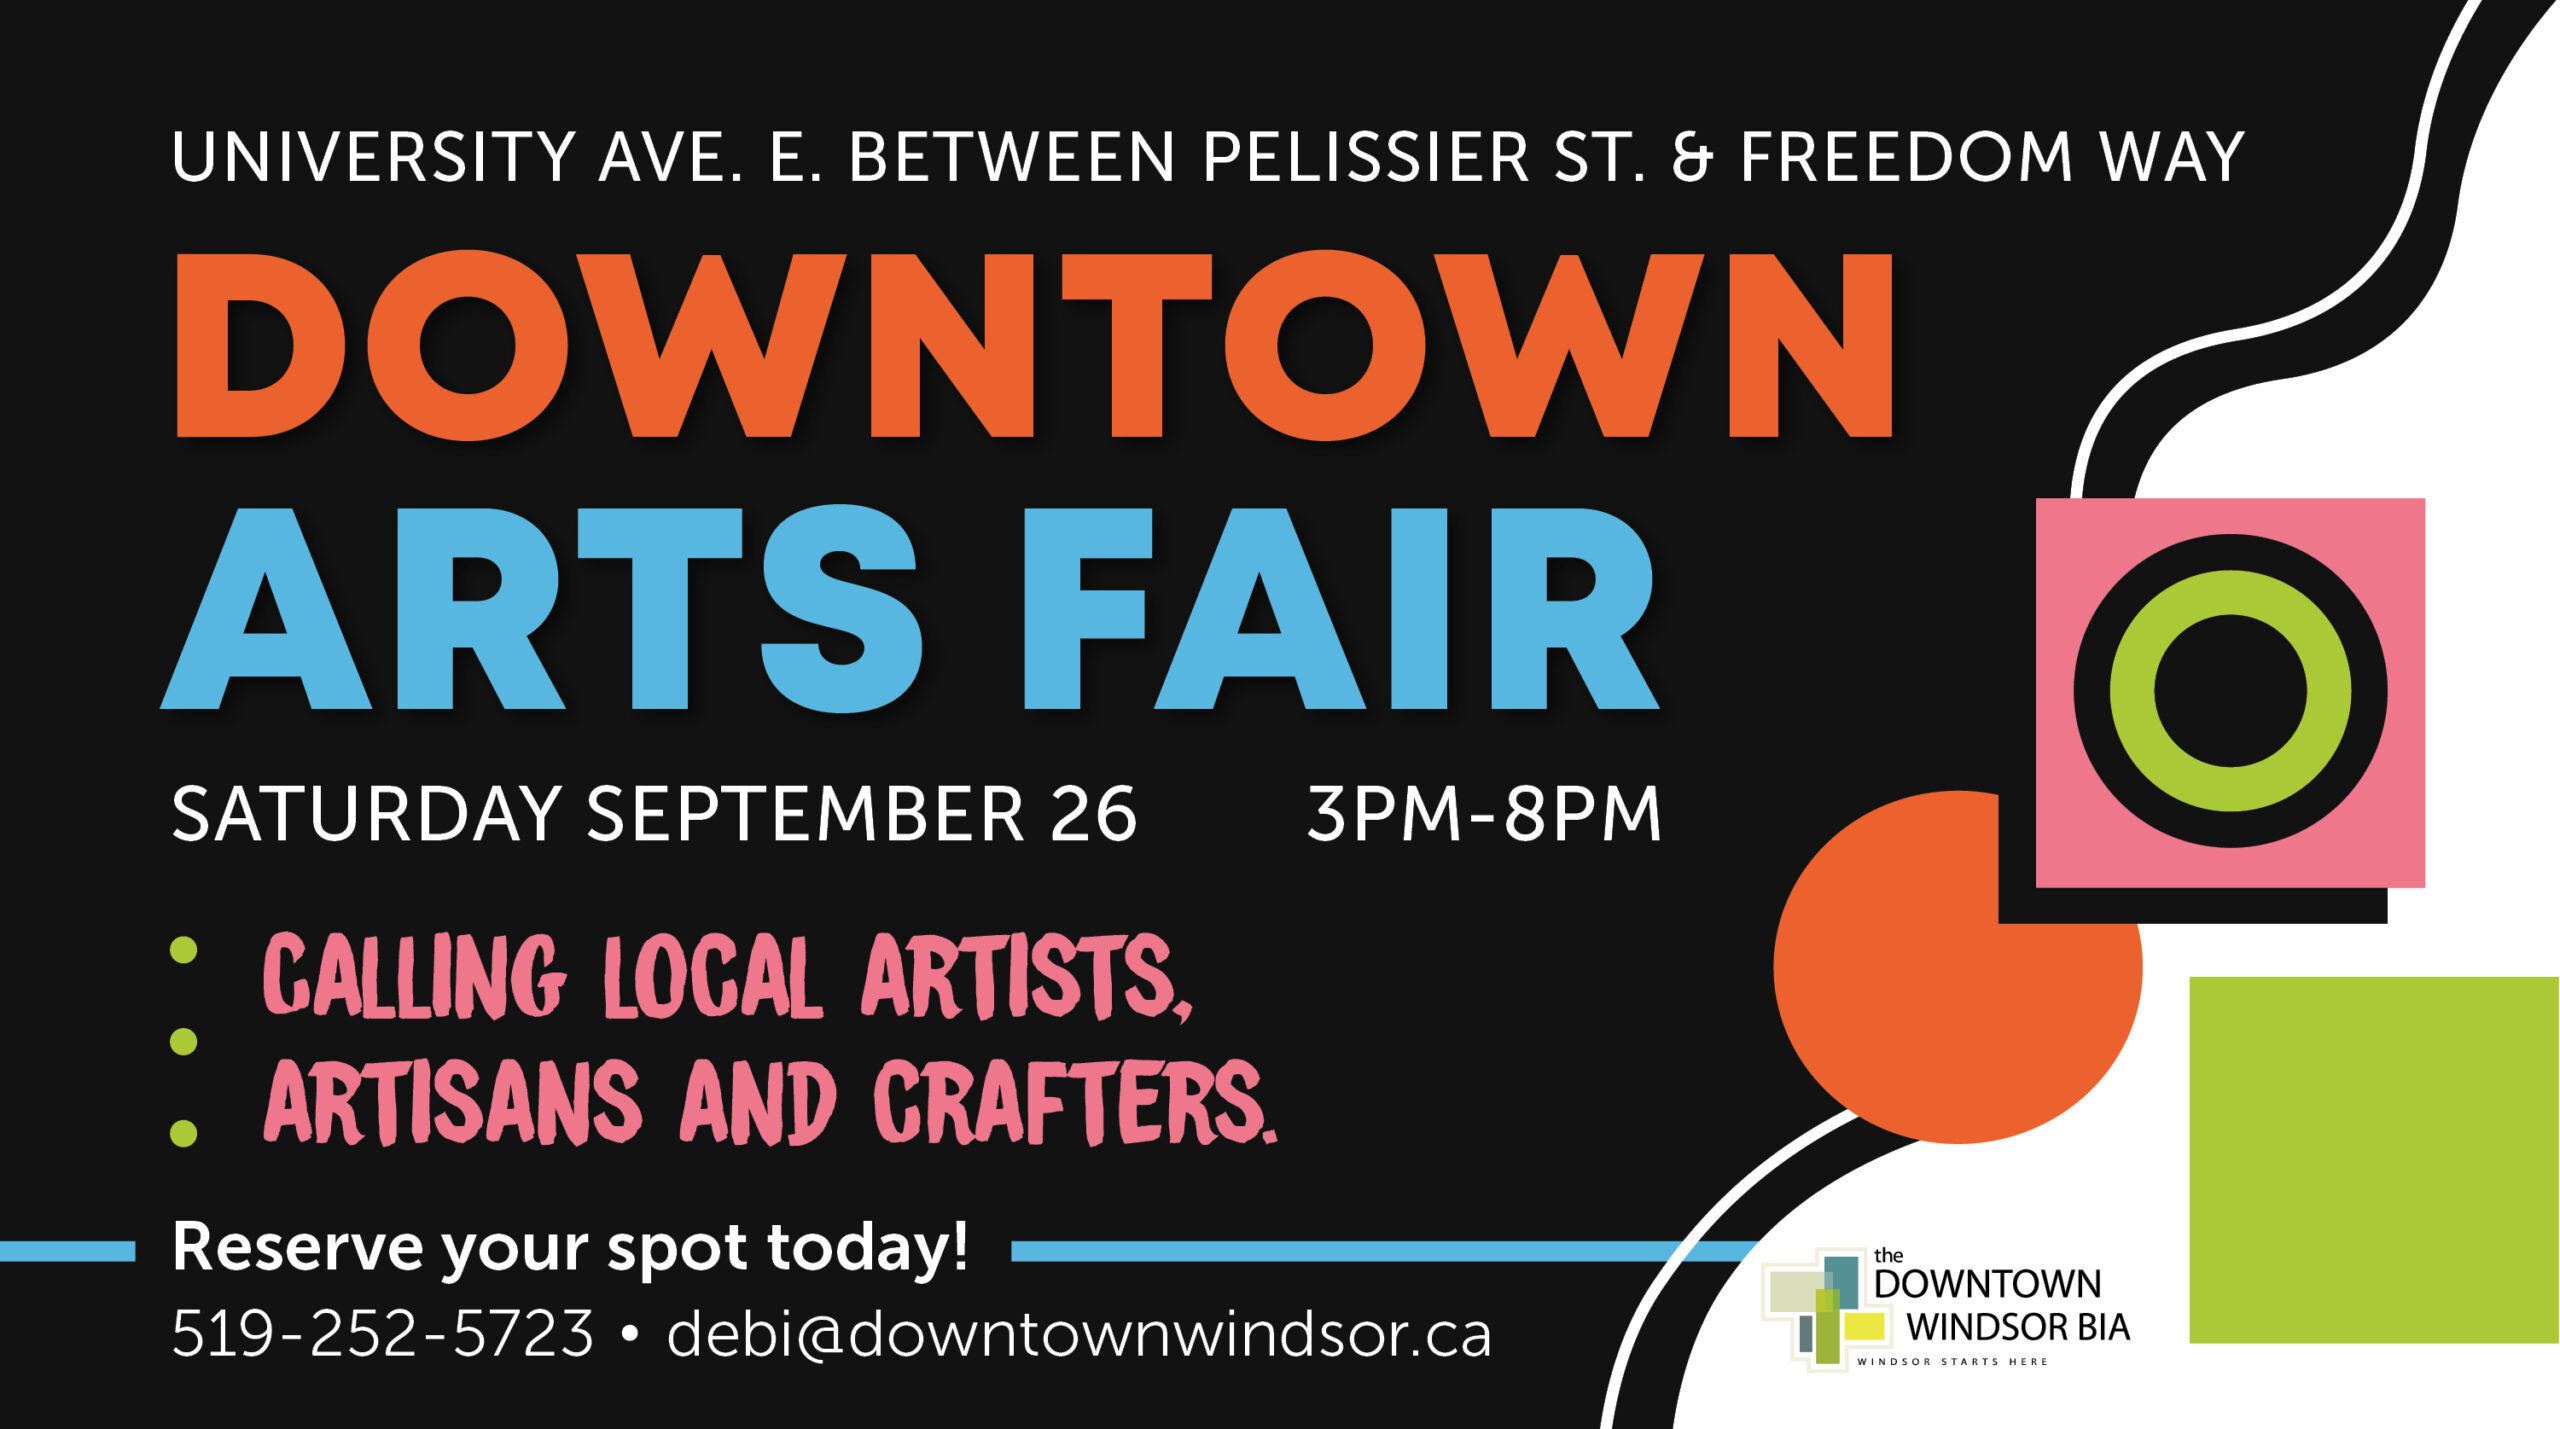 Downtown Arts Fair, September 26 from 3PM-8PM. University Ave. E. between Pelissier St. & Freedom Way. Calling local artists, artisans and crafters. Reserve your spot today! 519-252-5723.